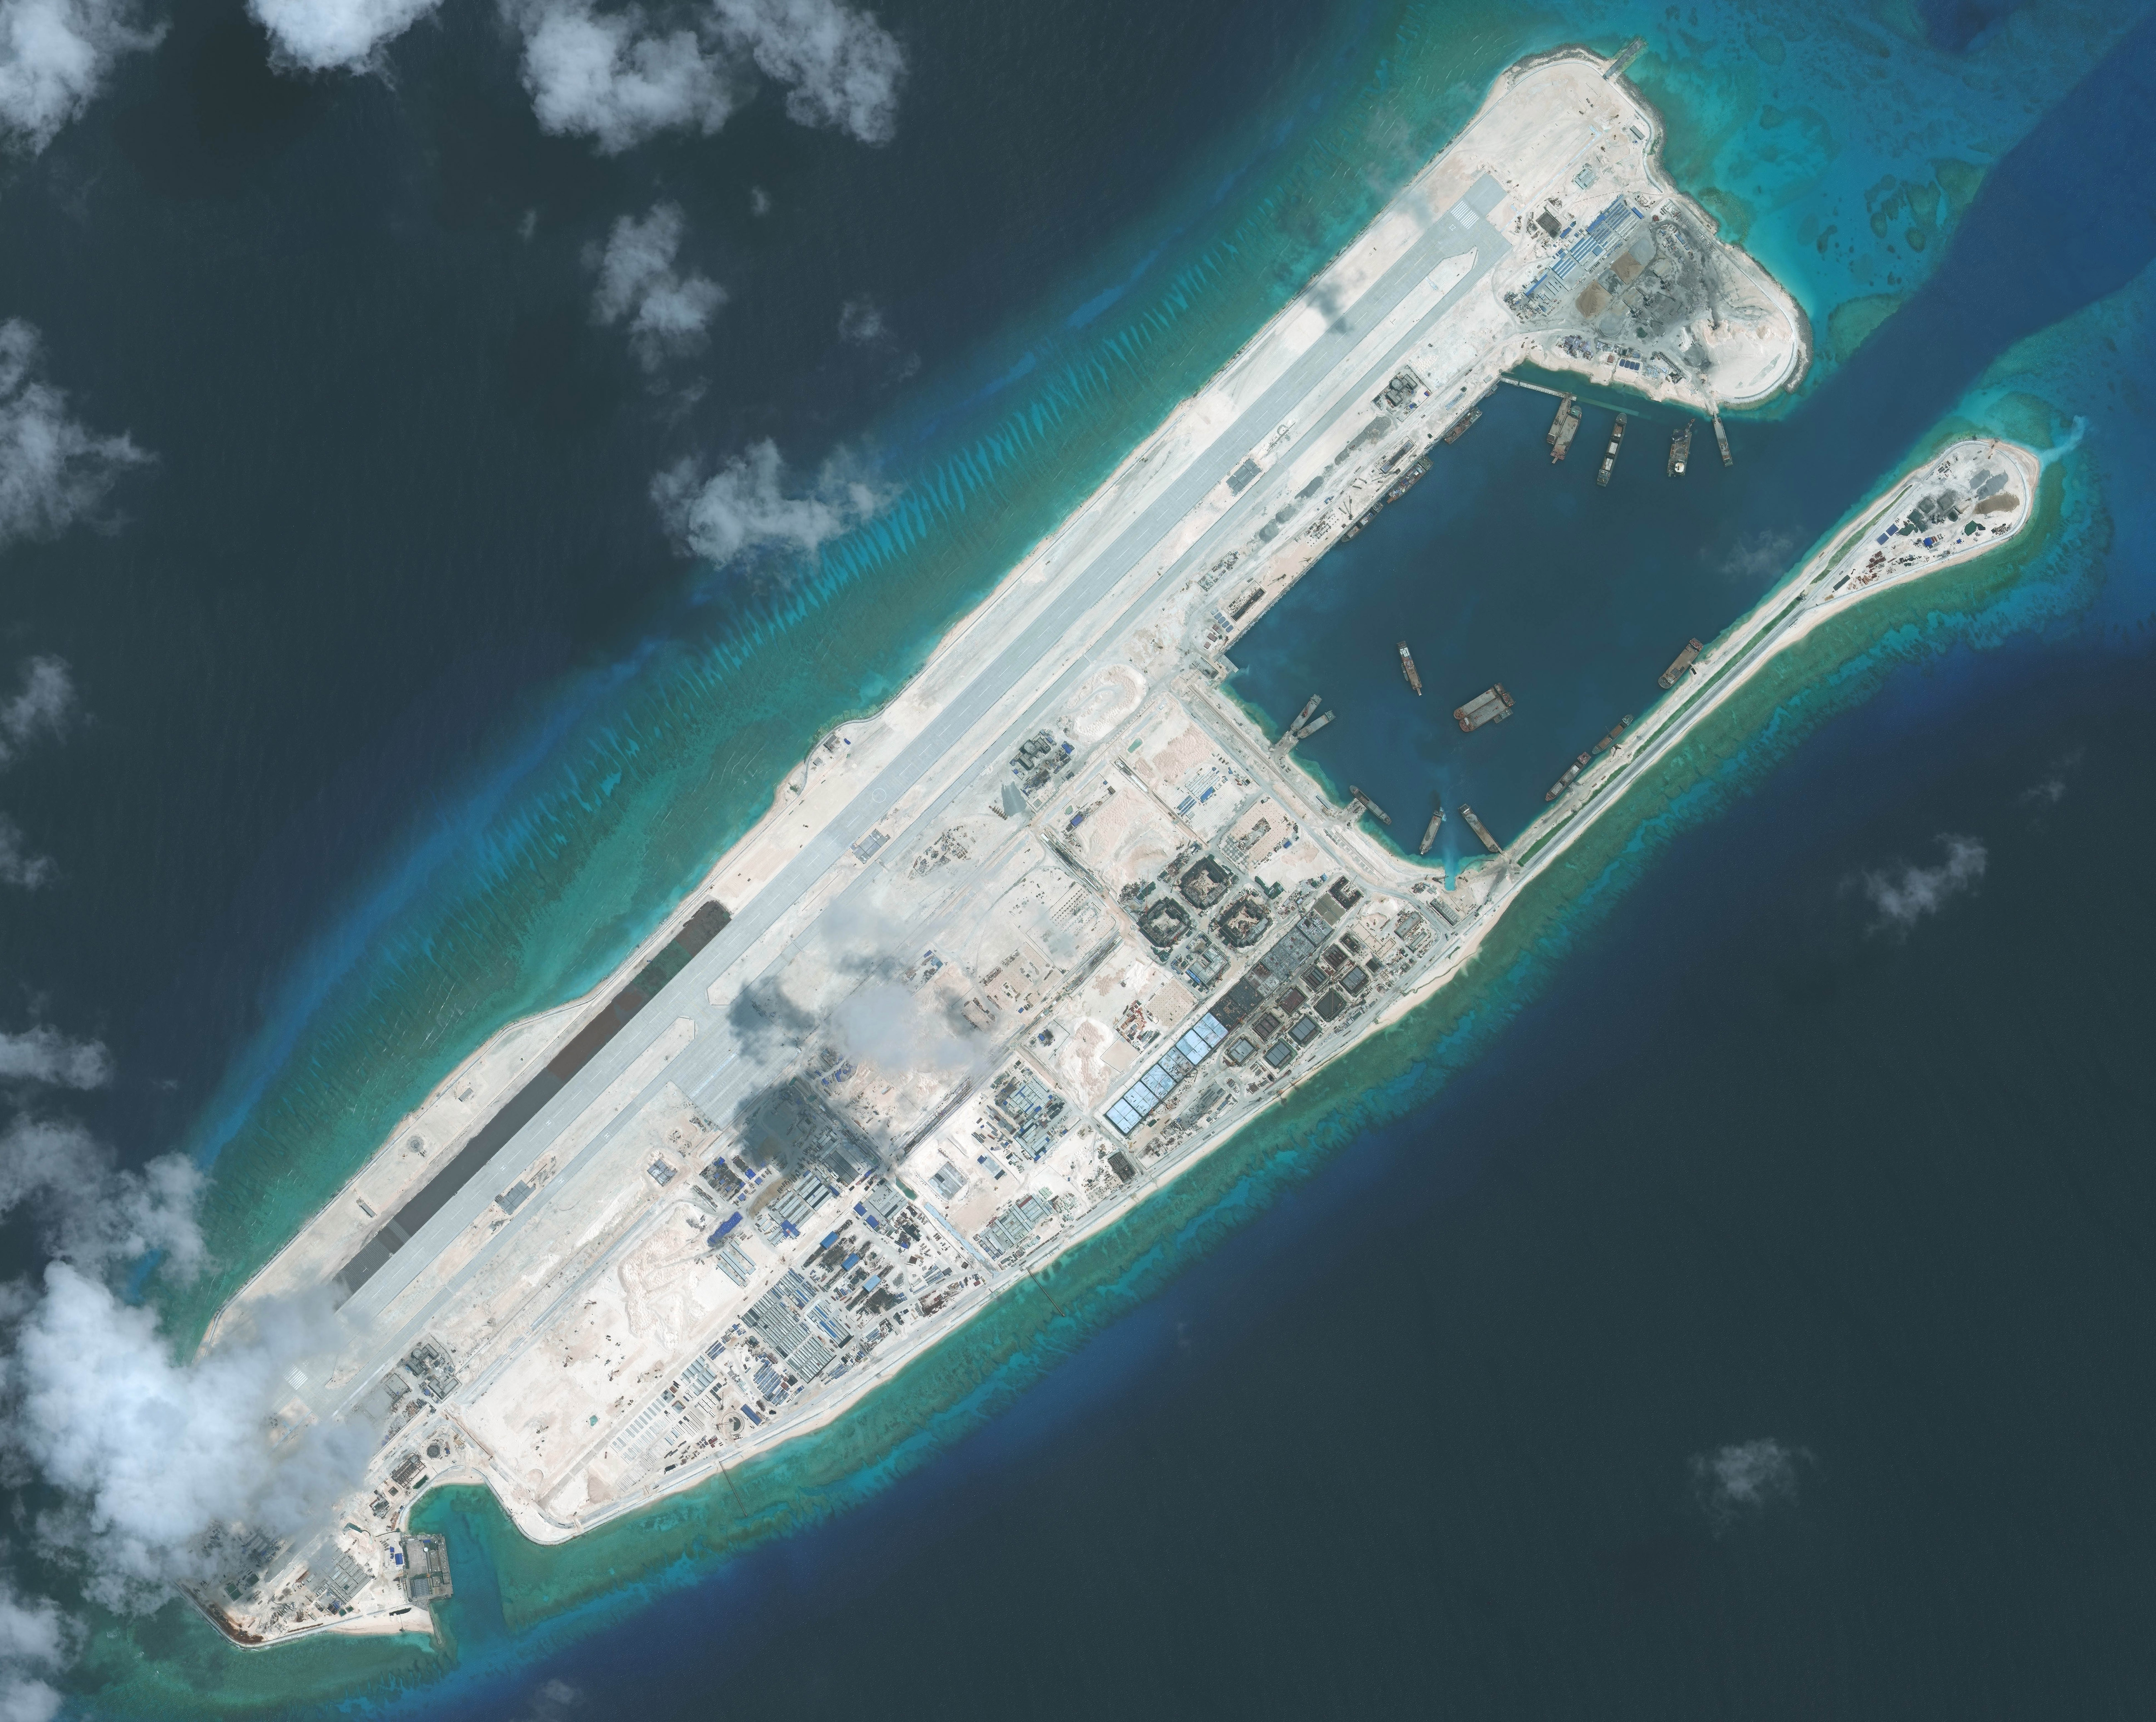 DigitalGlobe imagery of the nearly completed construction within the Fiery Cross Reef located in the South China Sea.